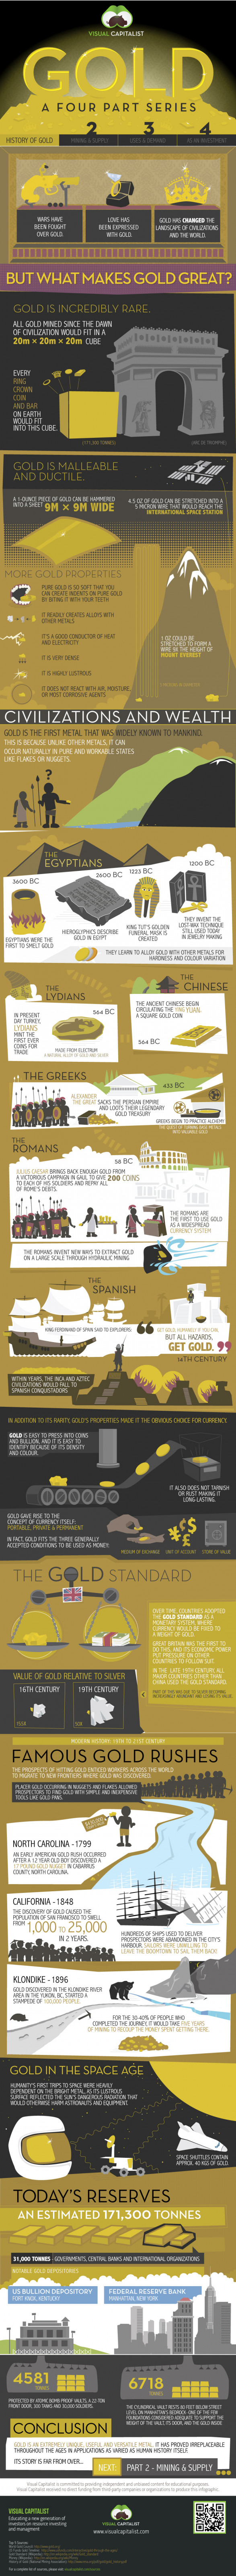 Gold: The History of Gold (Part I)